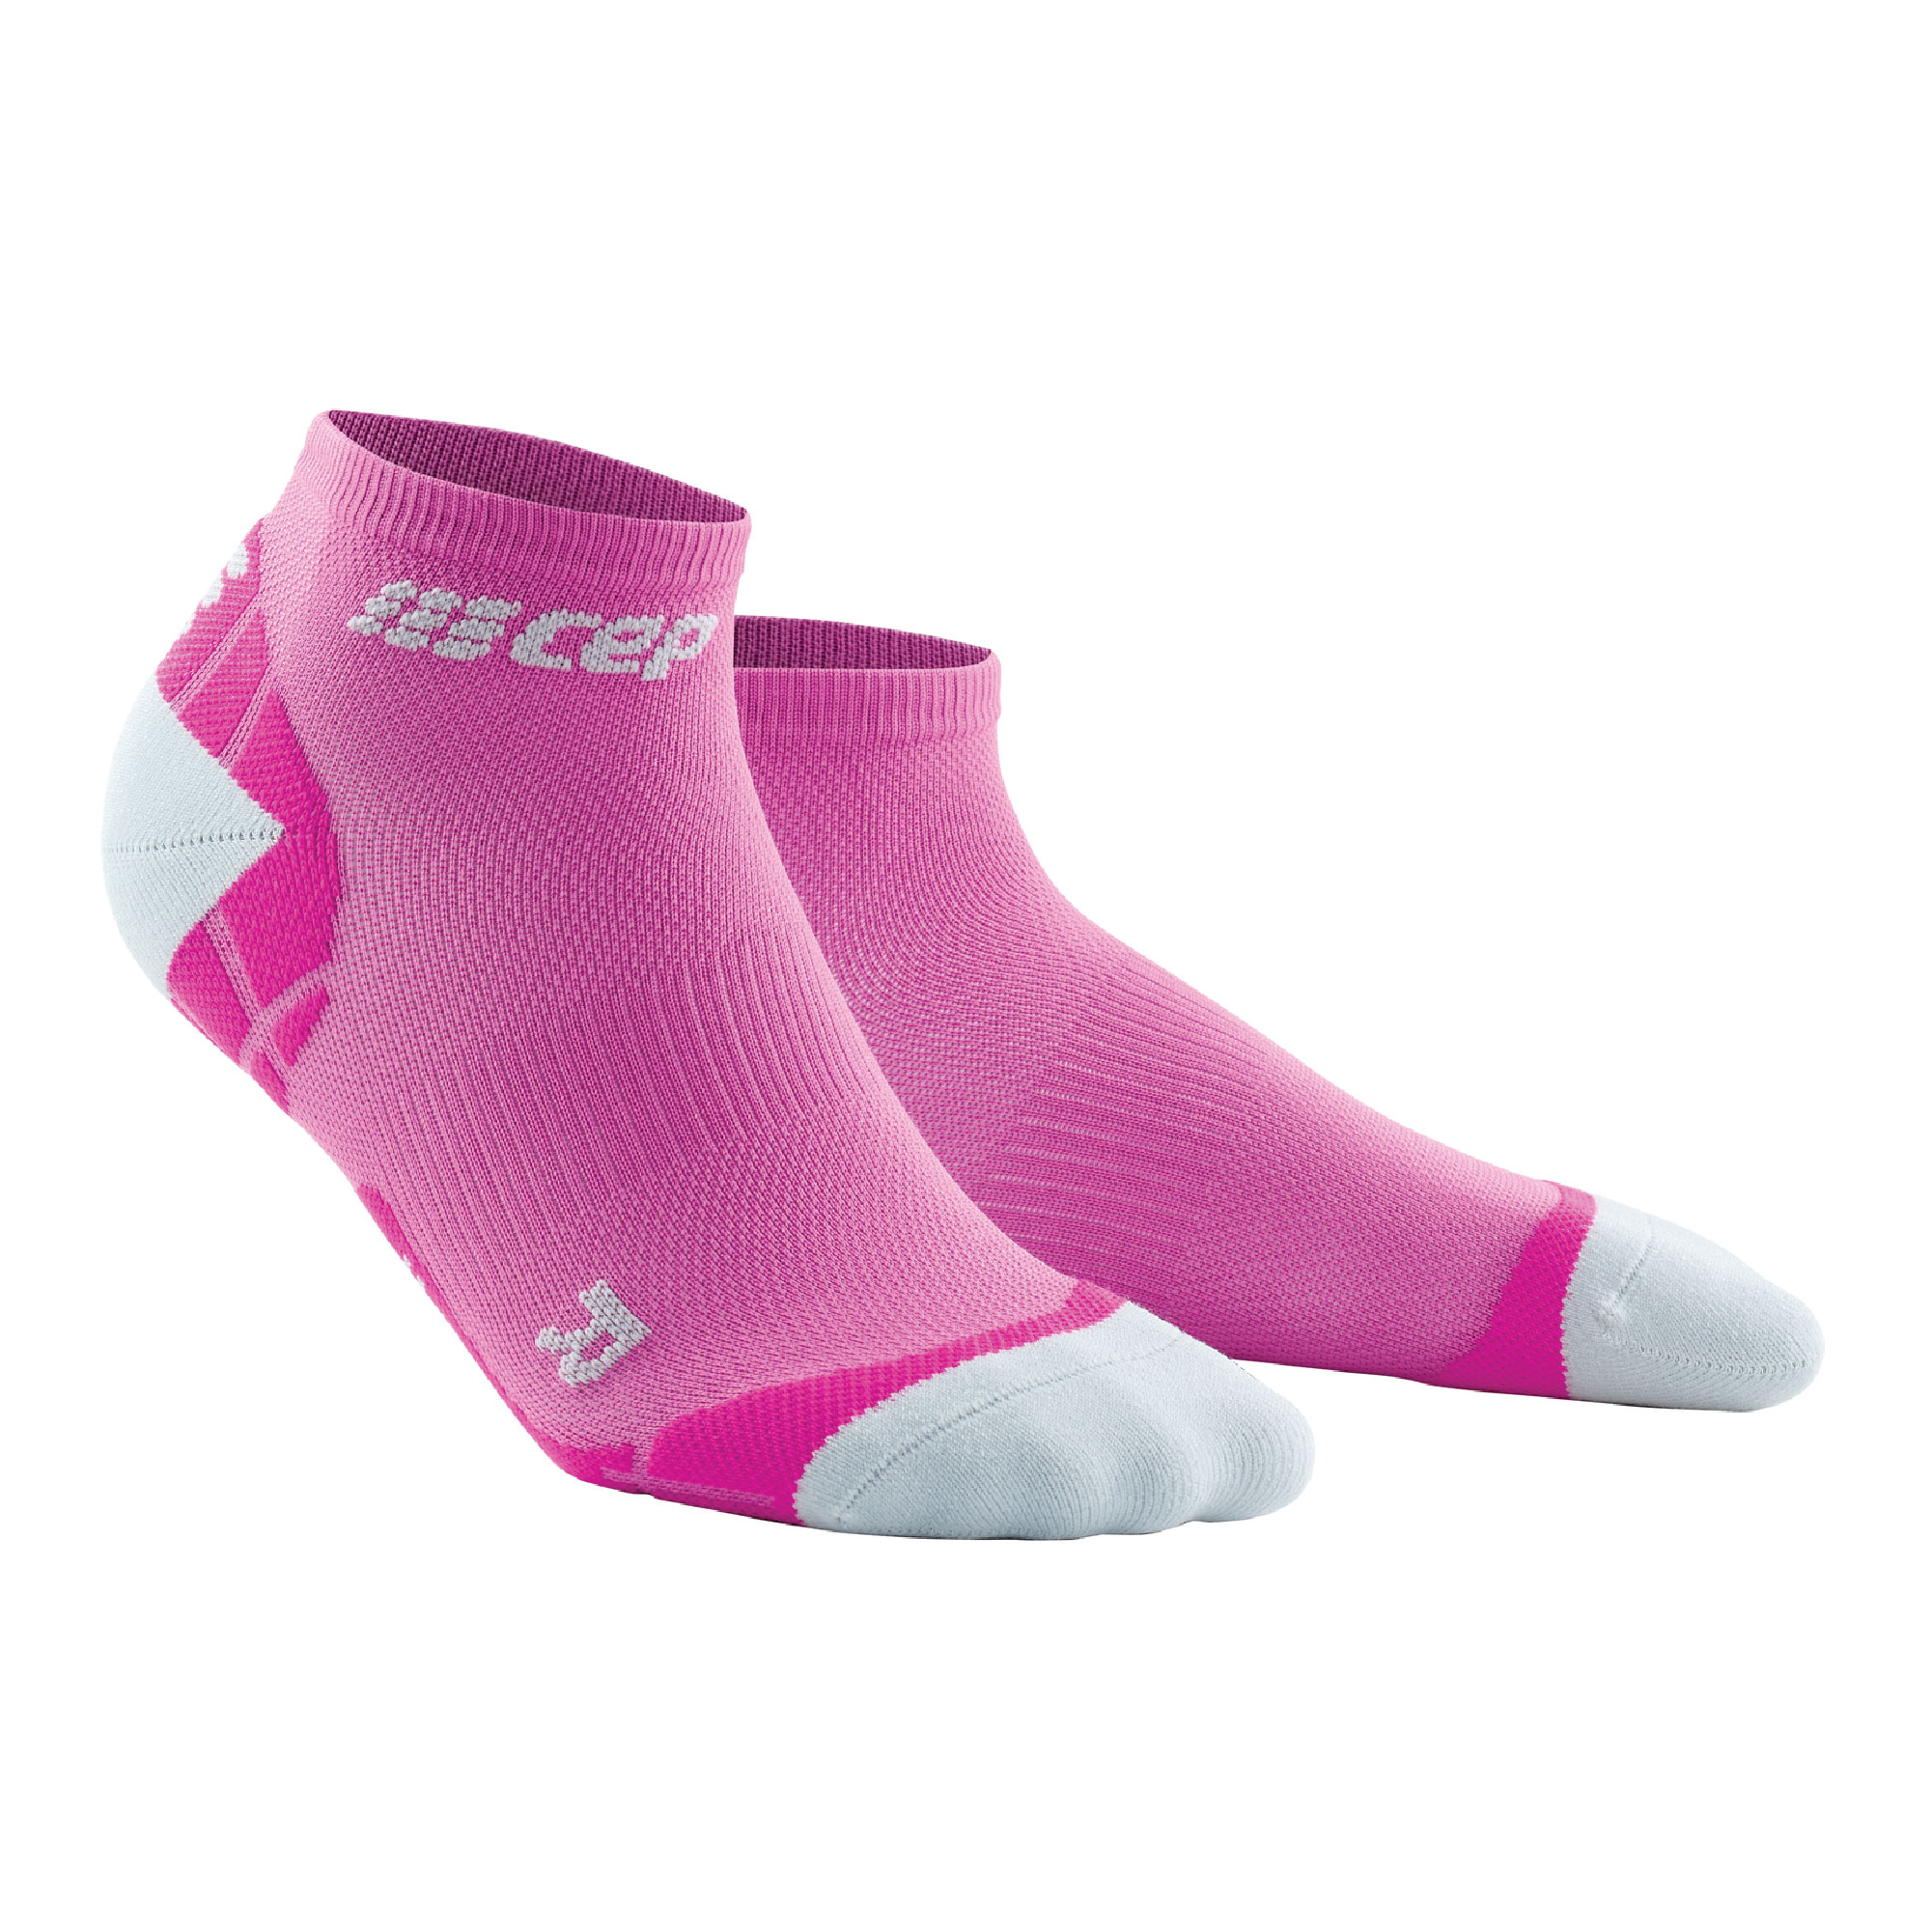 ULTRALIGHT LOW CUT SOCKS | WOMEN